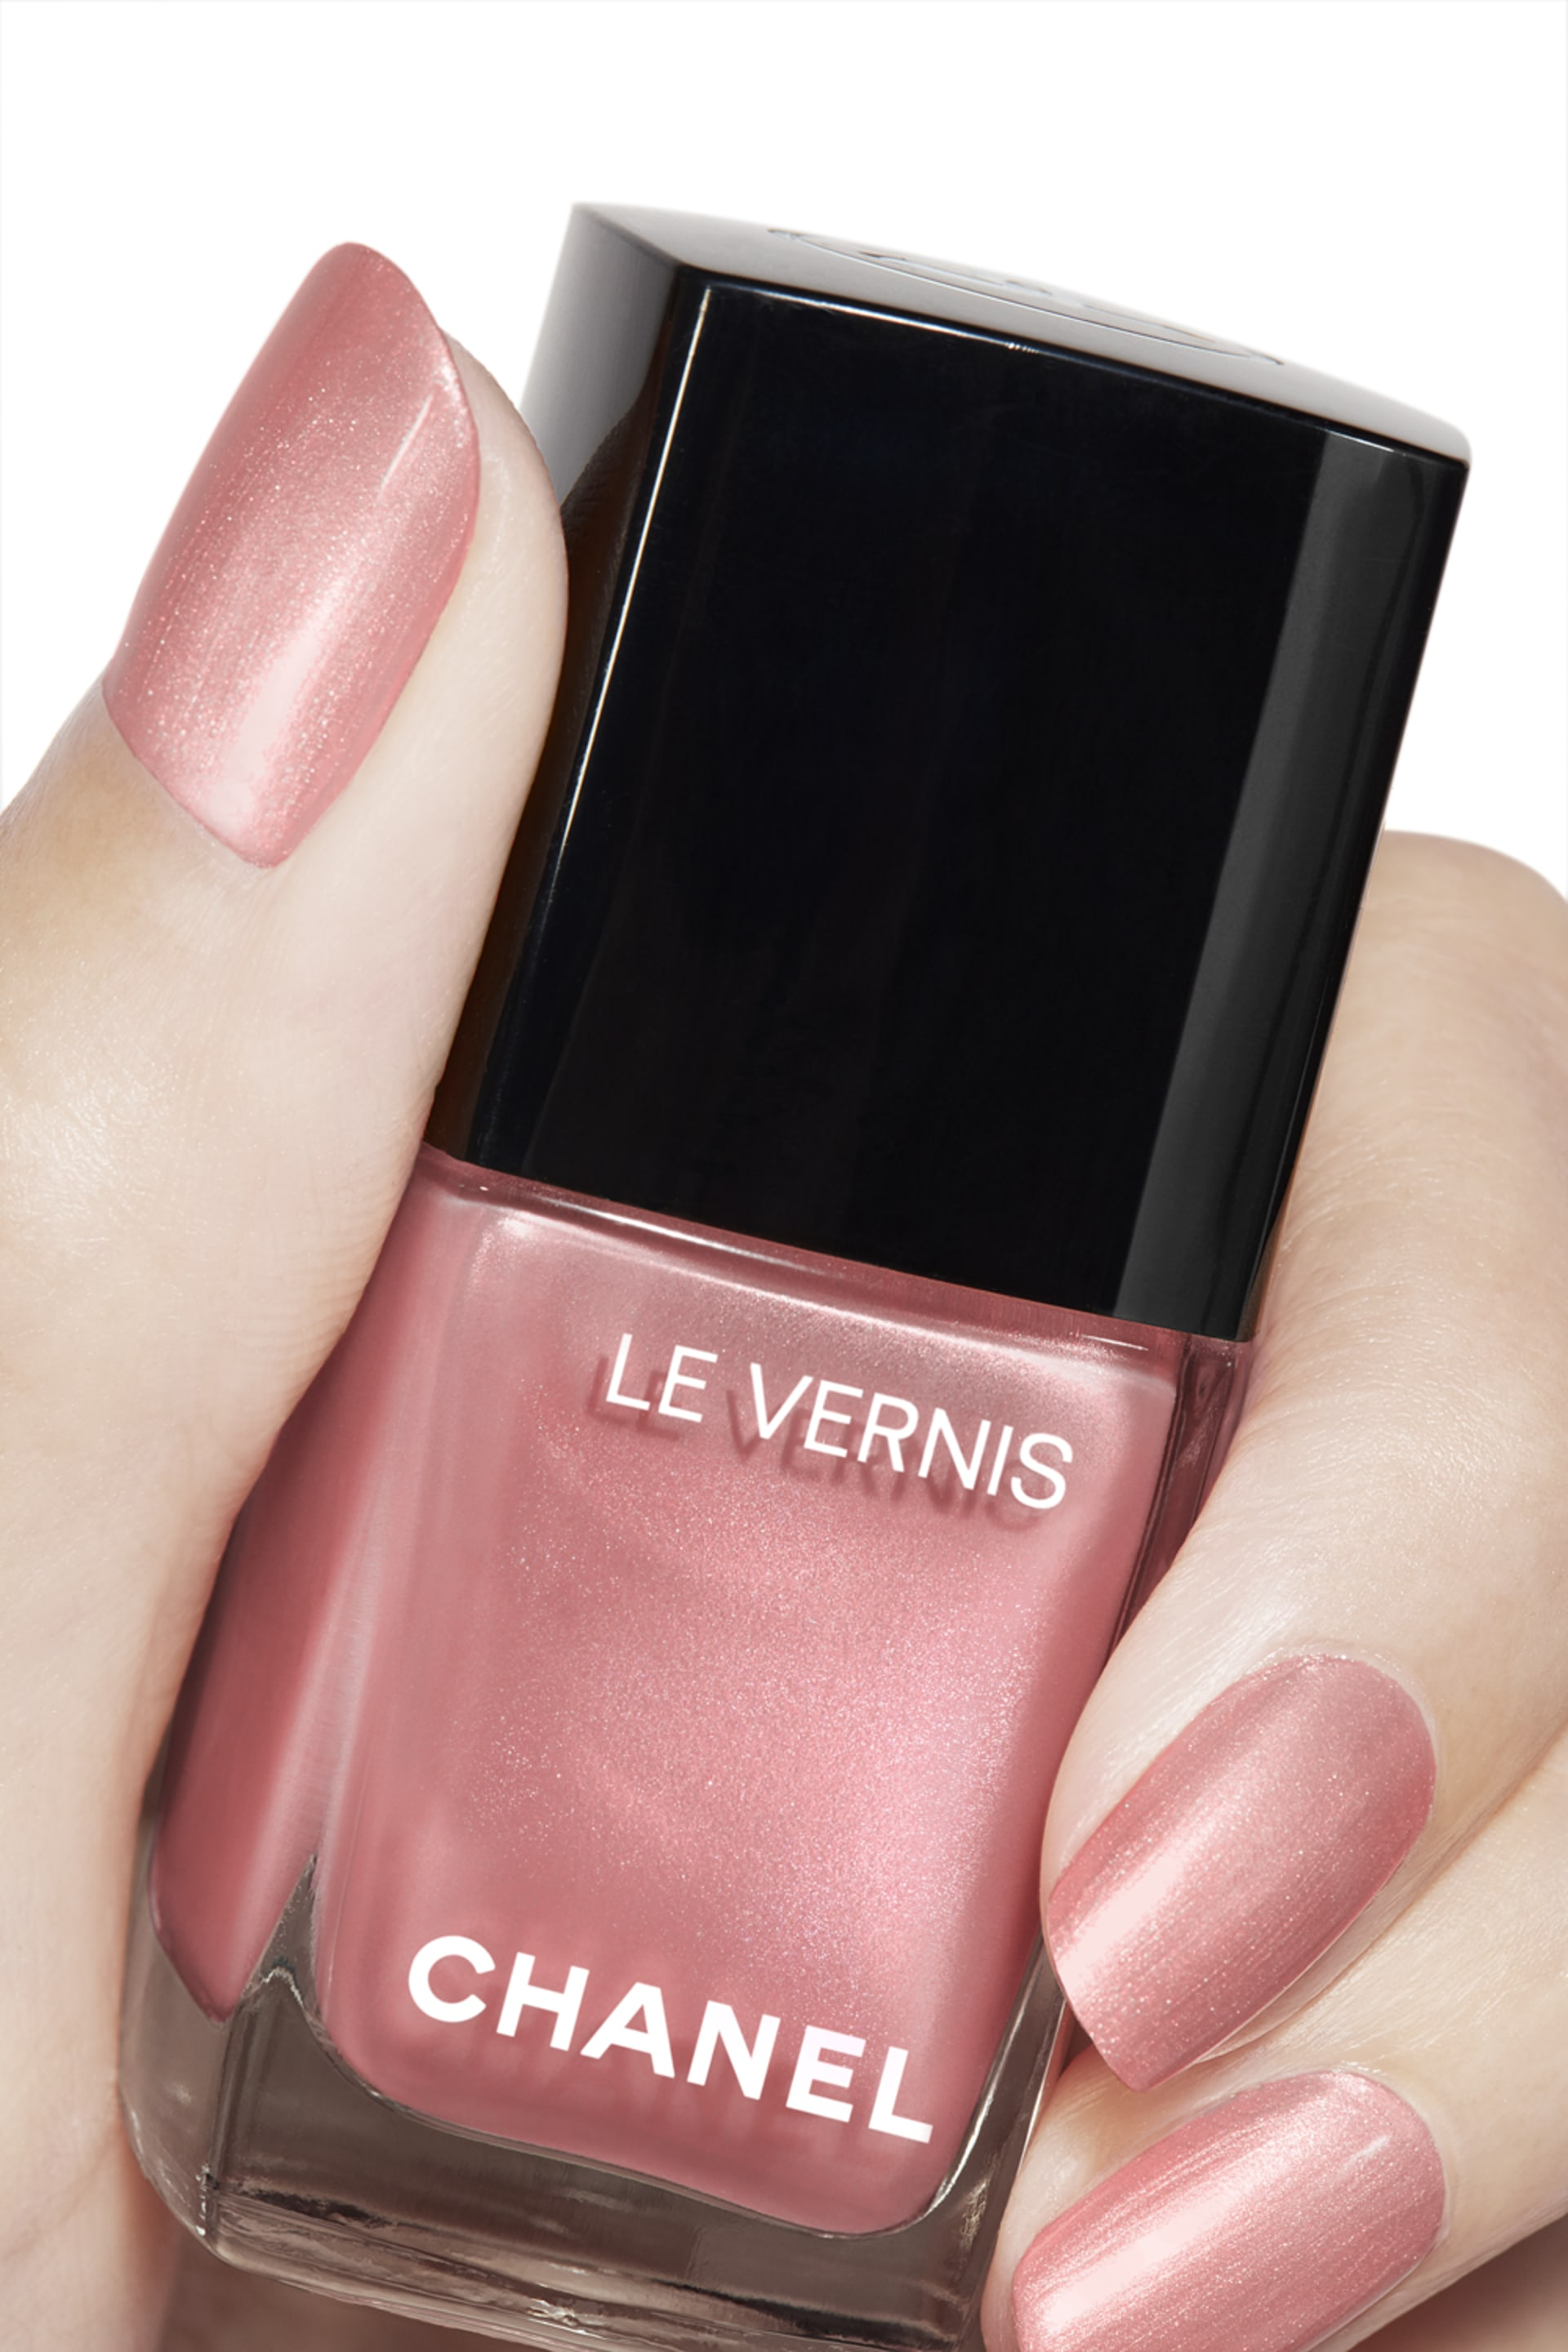 Application makeup visual 2 - LE VERNIS 741 - FLEUR DE PÊCHER